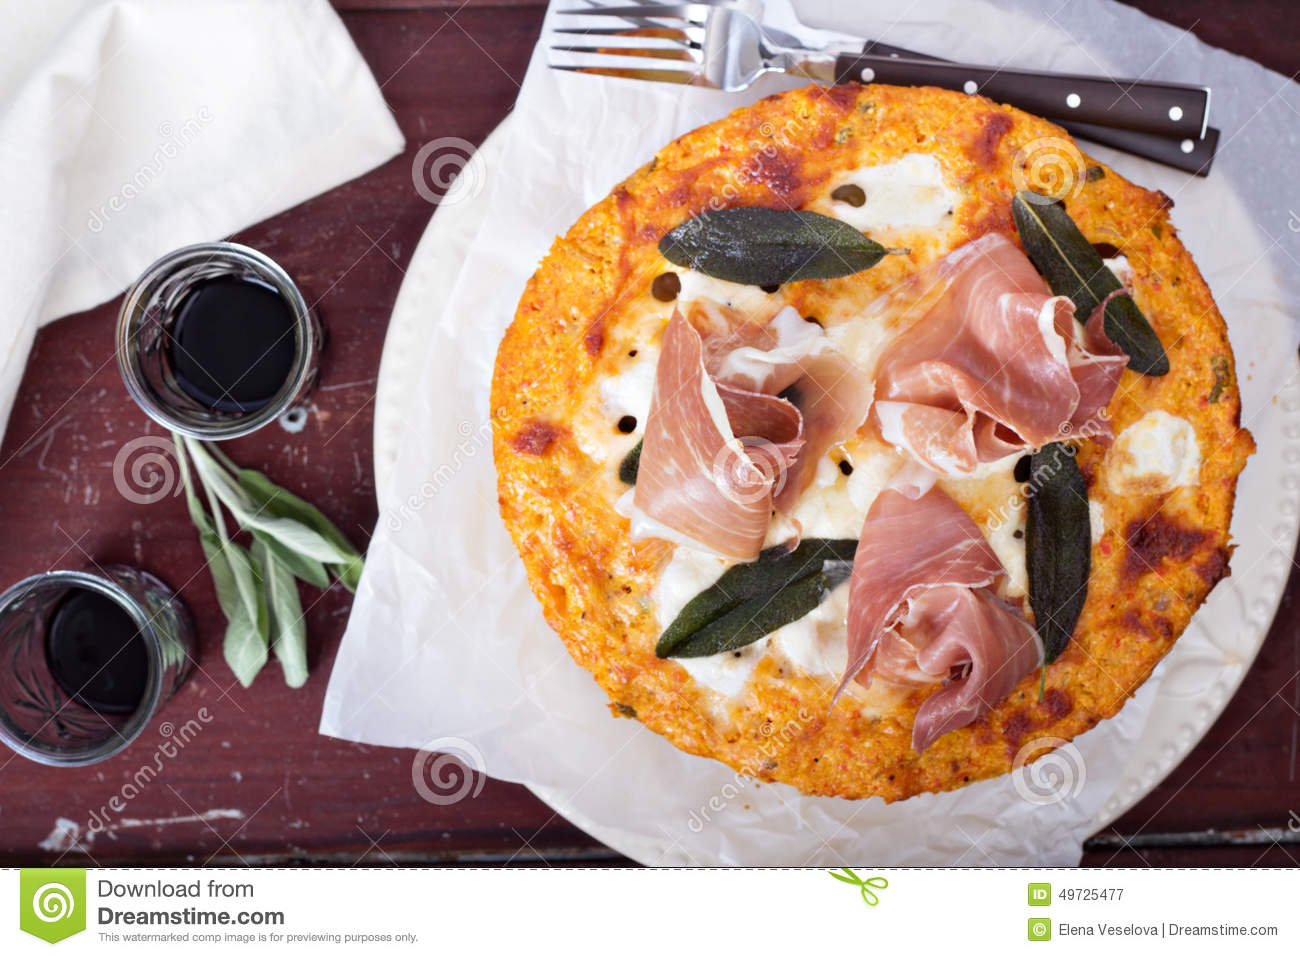 Pasta Pie With Cheese Sauce And Sage Stock Photo - Image: 49725477